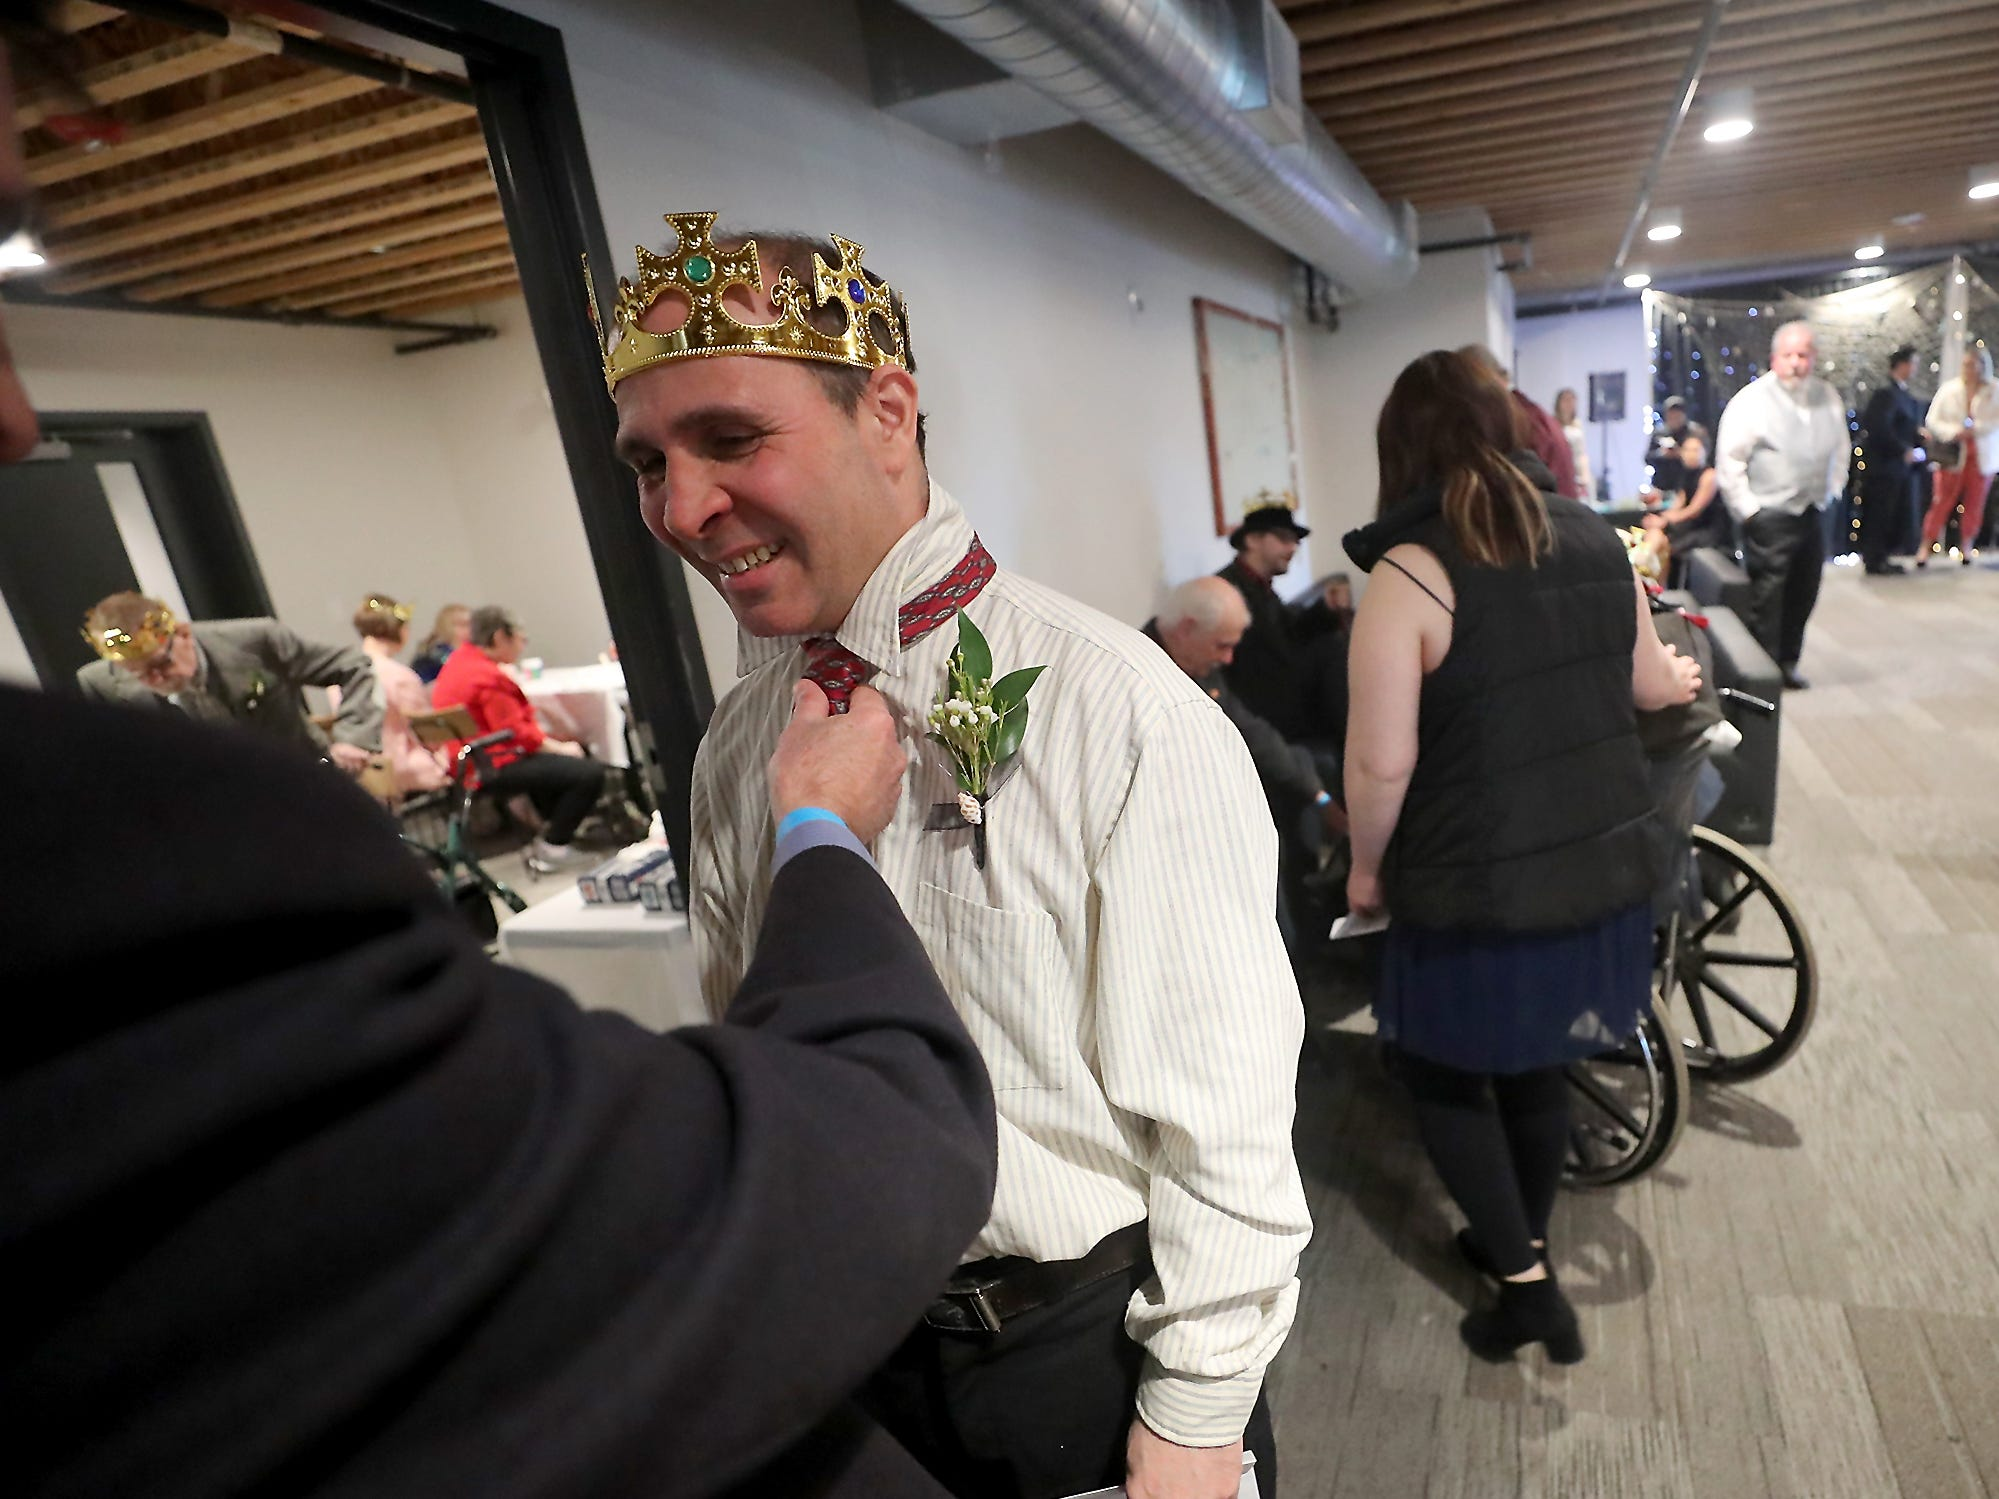 Night To Shine prom attendee Sean Garrity, of Bremerton, gets his tie on and straightened with the help of volunteer Bruce Coles at the newlife Training & Events Center in Silverdale on Friday, March 8, 2019.